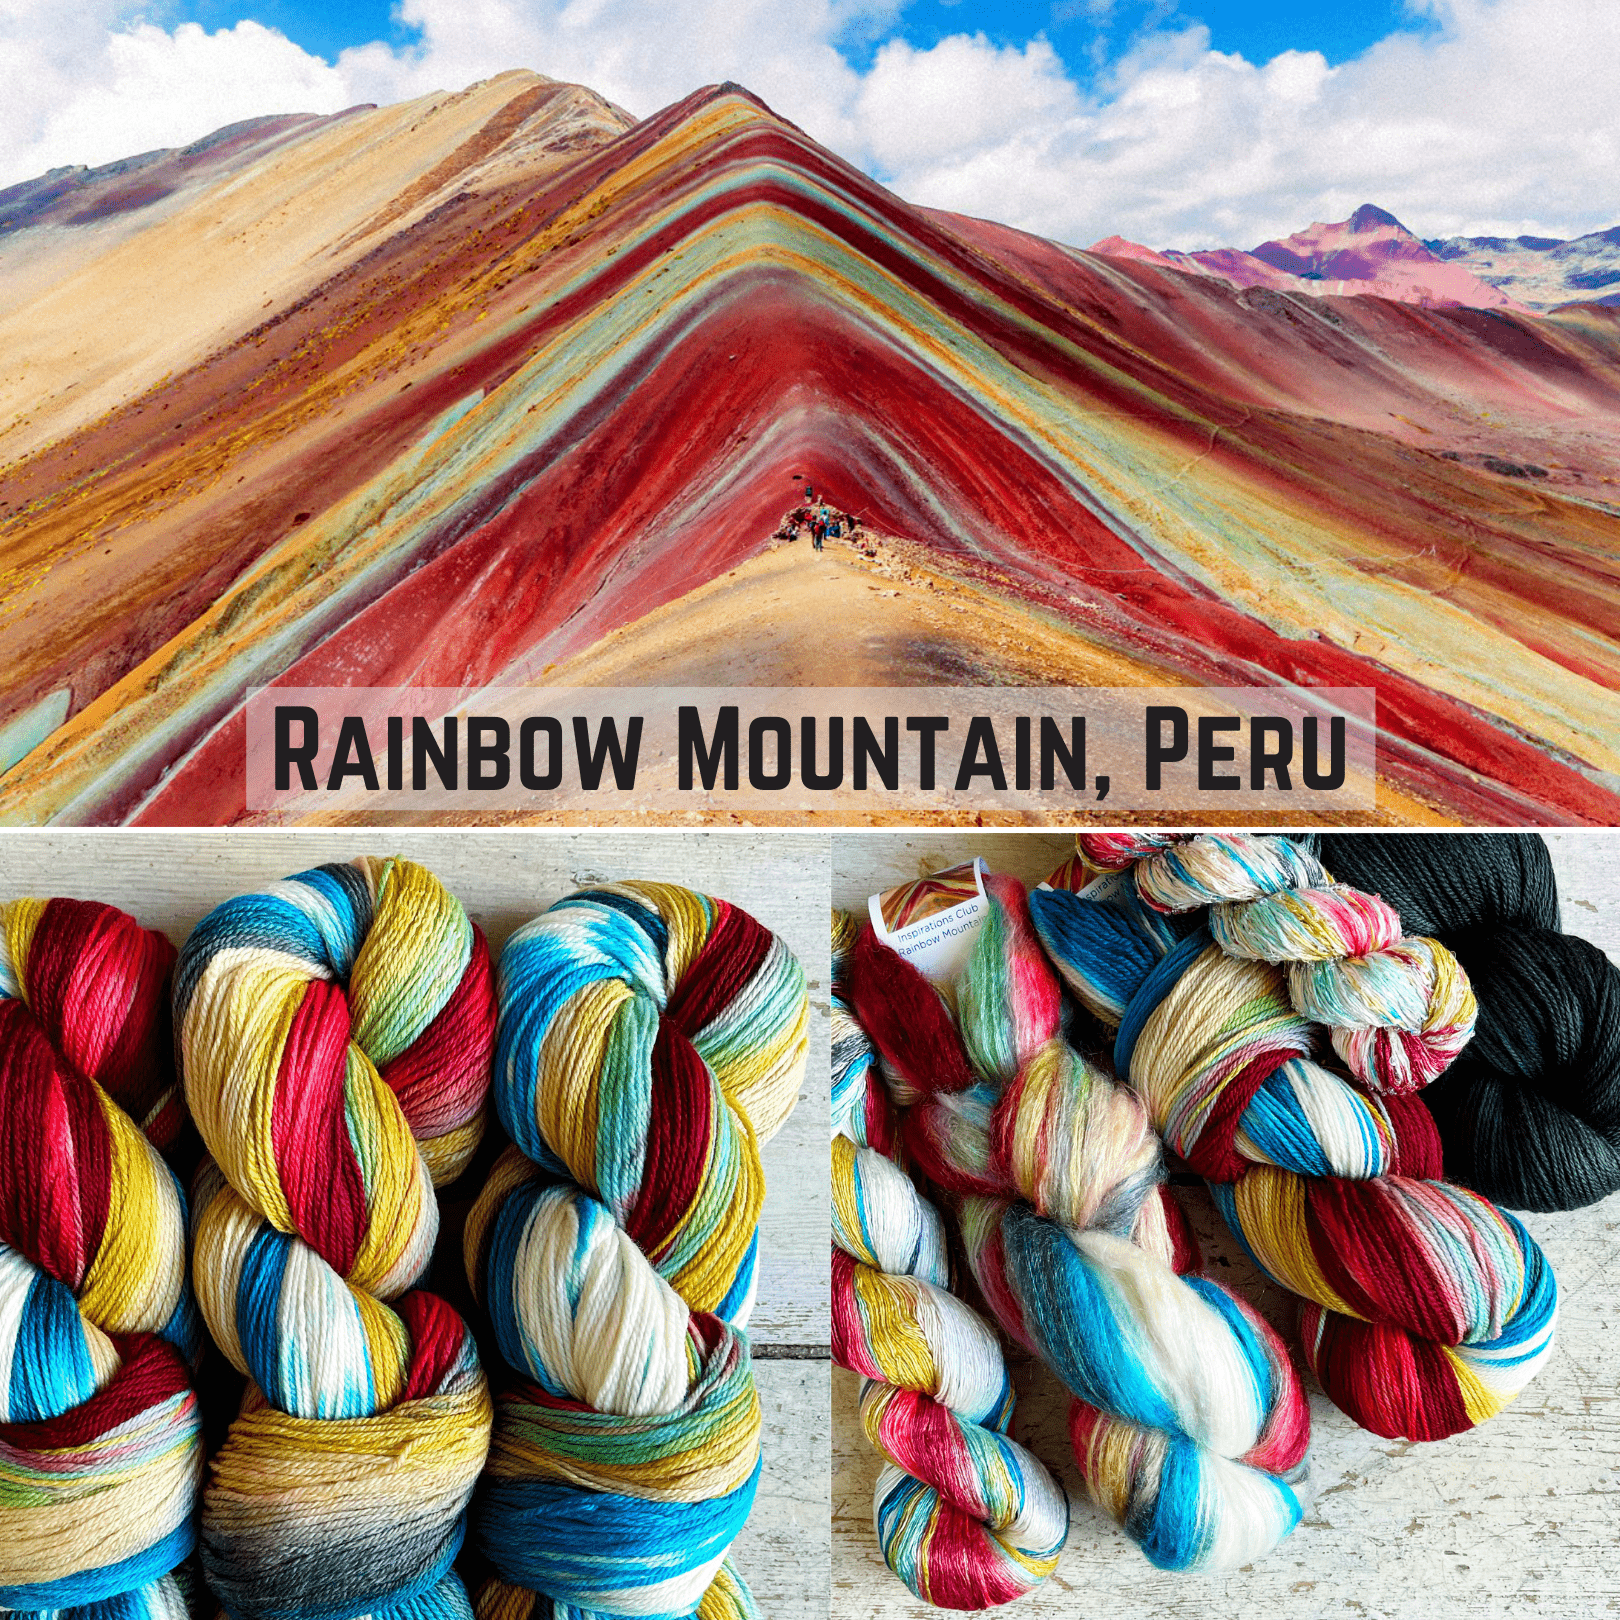 Artyarns Inspiration Club April 2021: Rainbow Mountain Artyarns Yarn